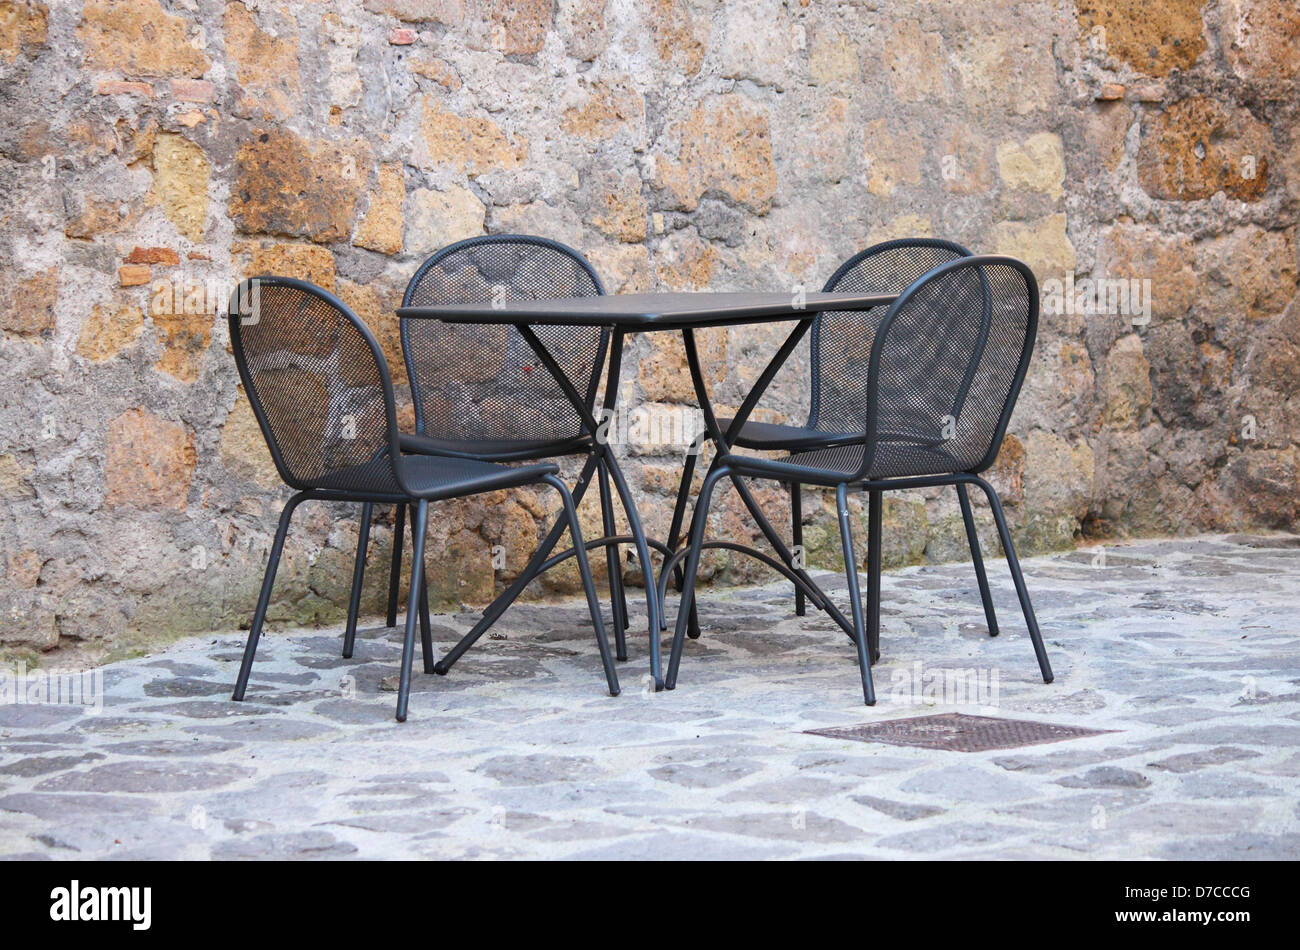 Iron Table And Chairs On Outdoors Cafe In Mediterranean Europe